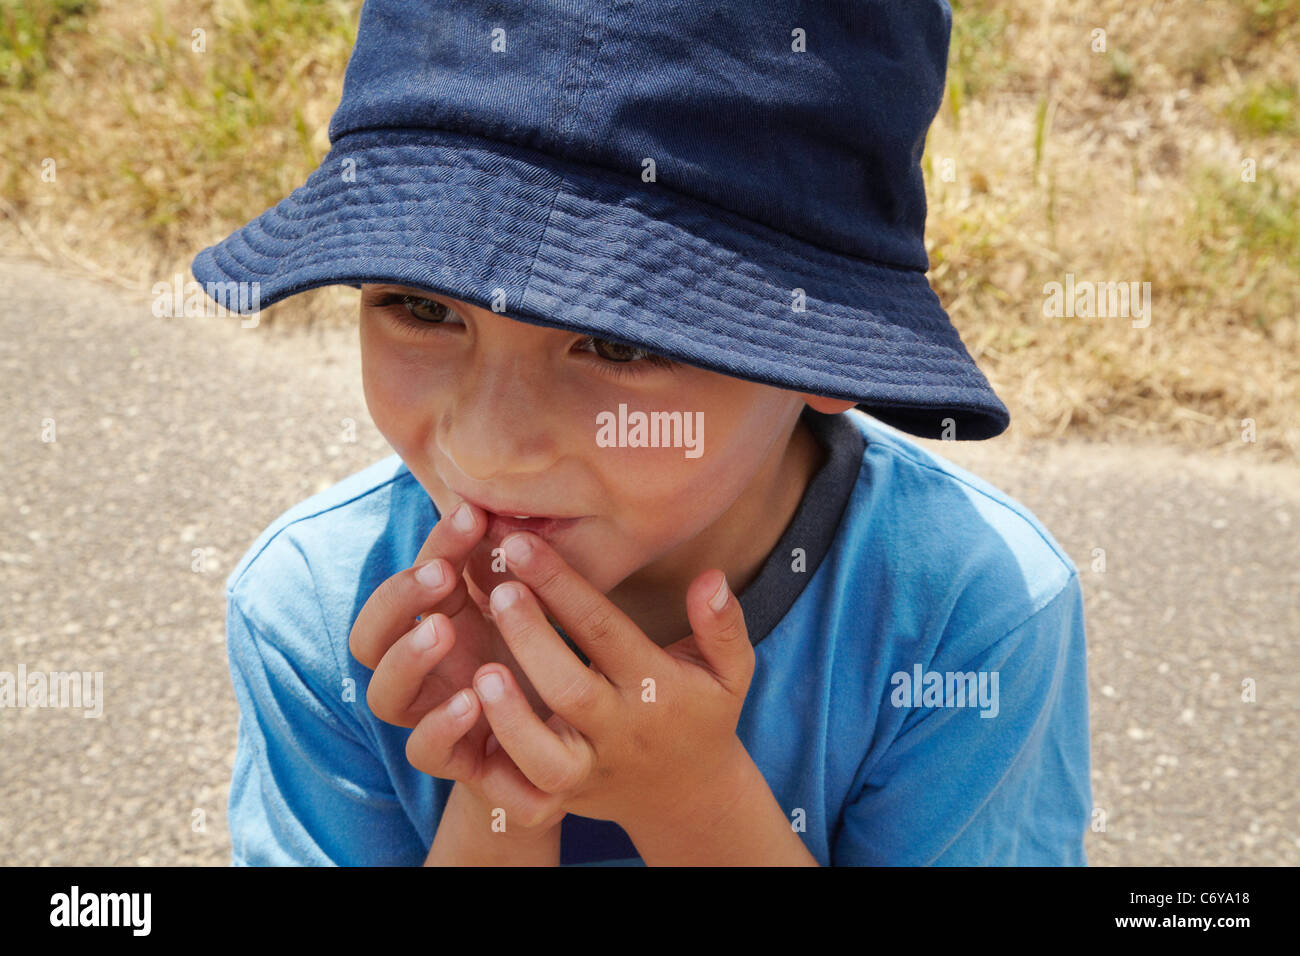 Curious boy touching his mouth Stock Photo